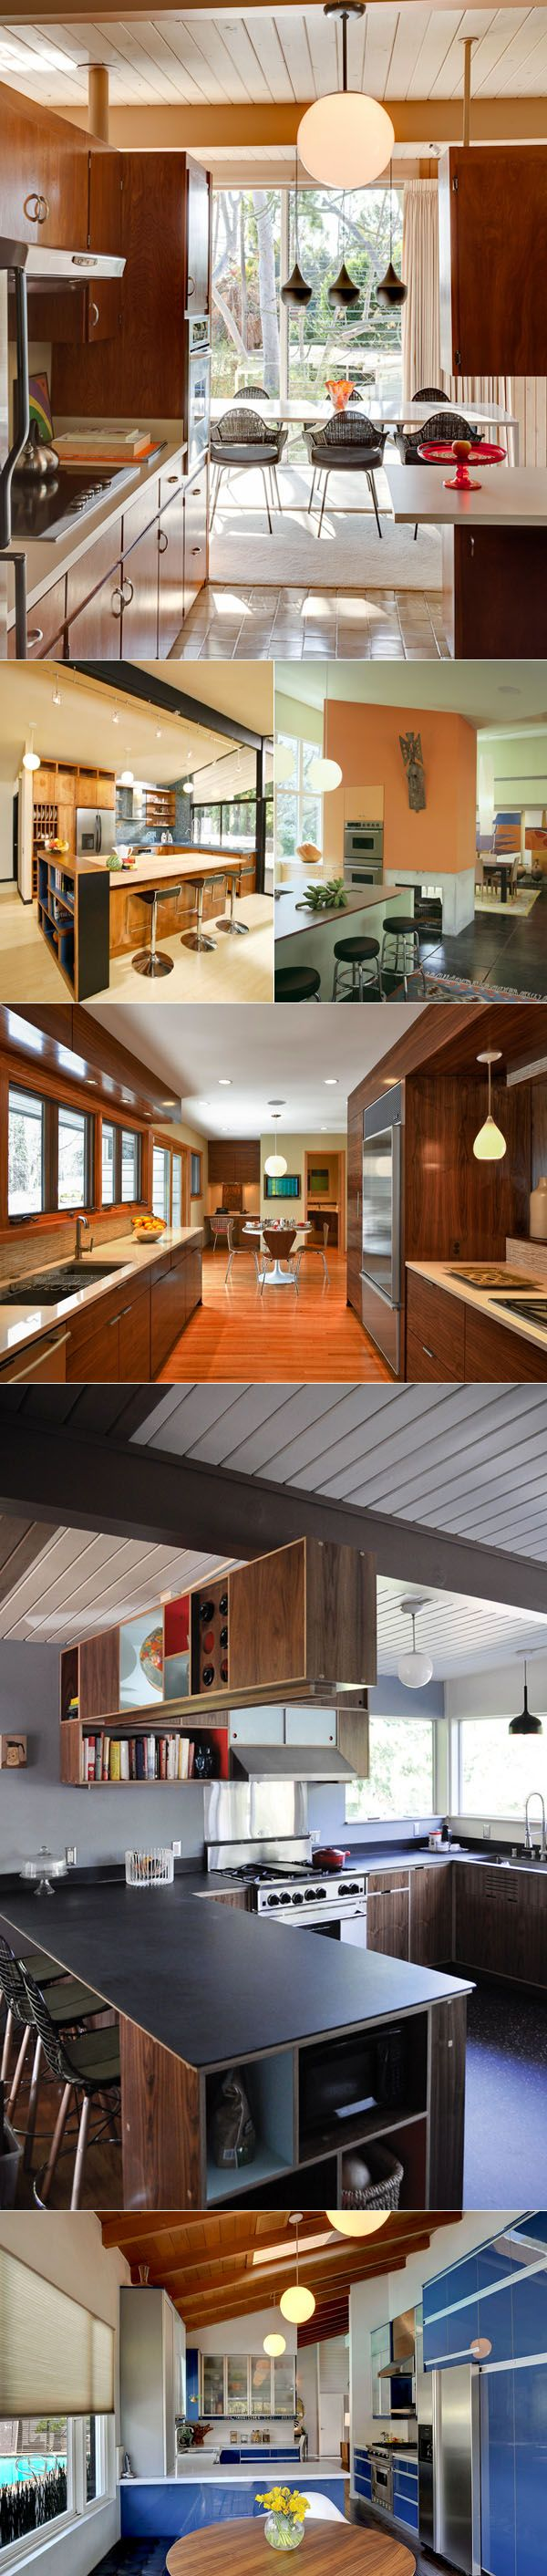 Mid Century kitchen. Love the first one on 2nd row